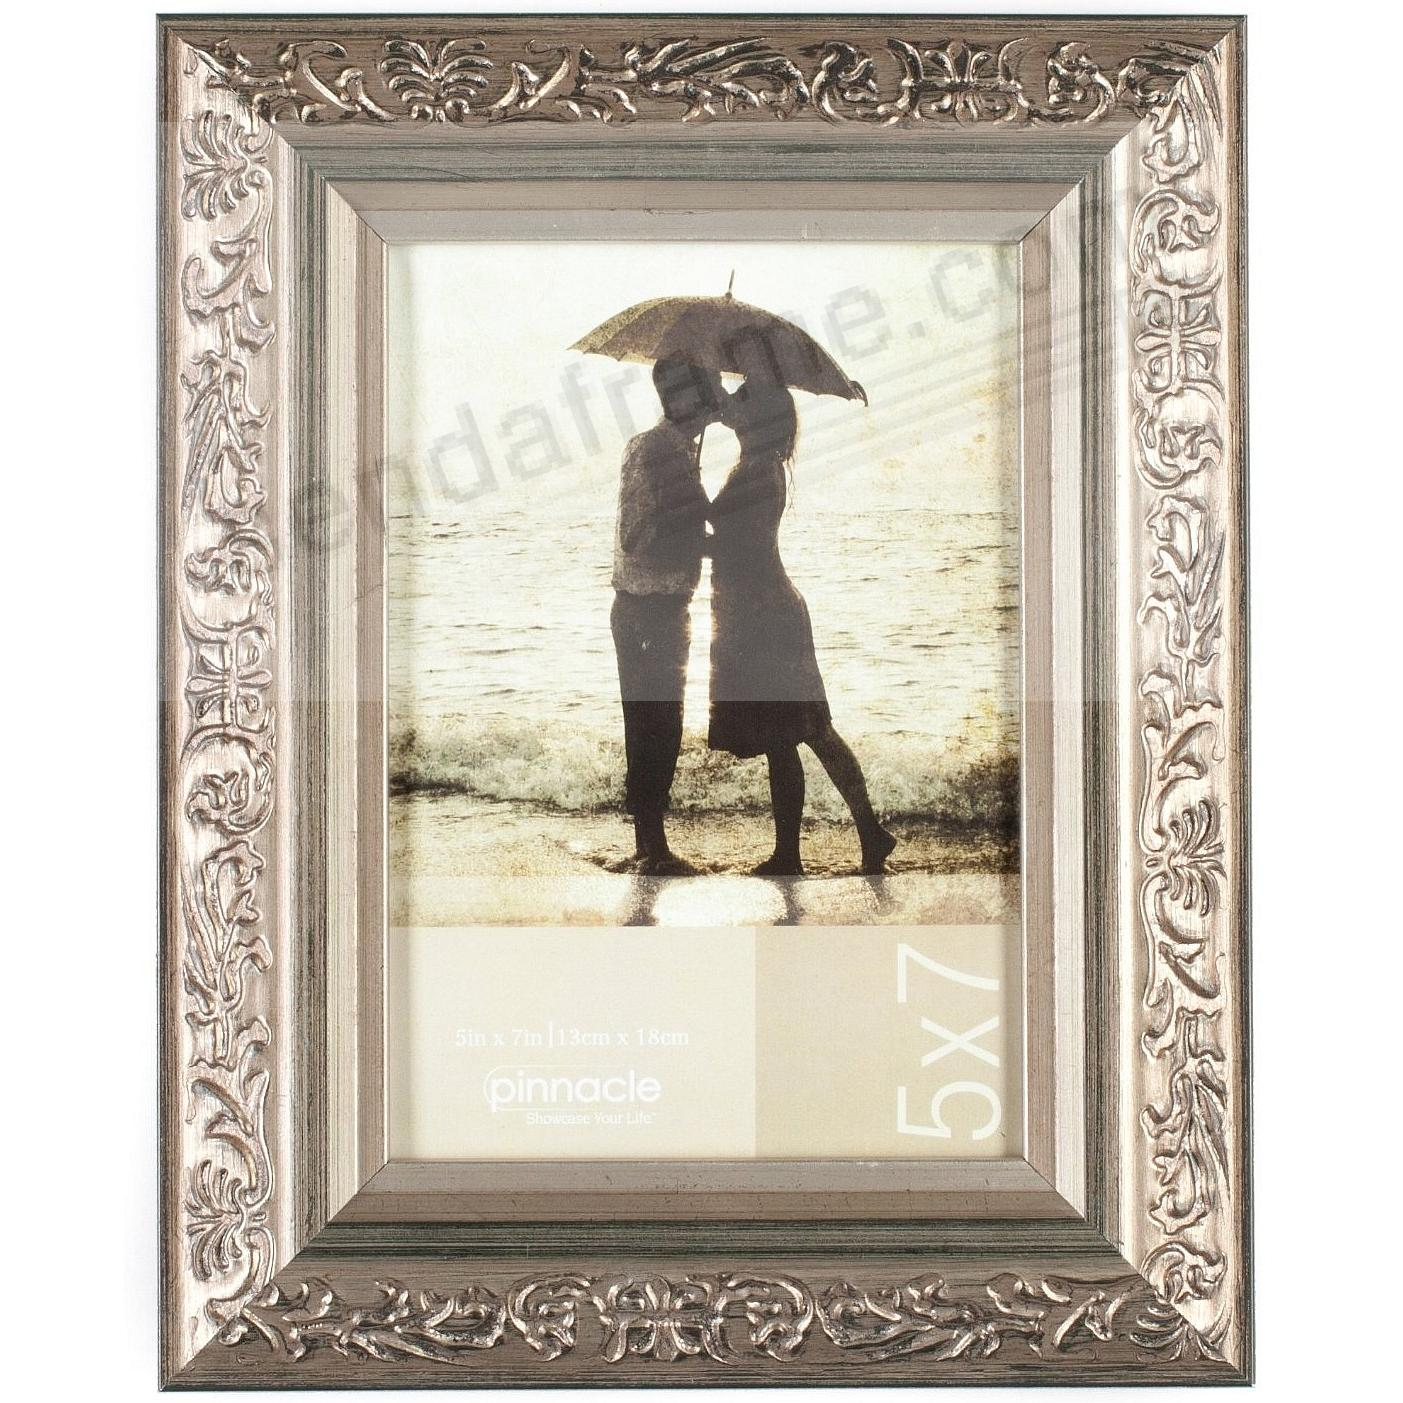 CHAMPAGNE ORNATE 5x7 frame by Pinnacle® - Picture Frames, Photo ...